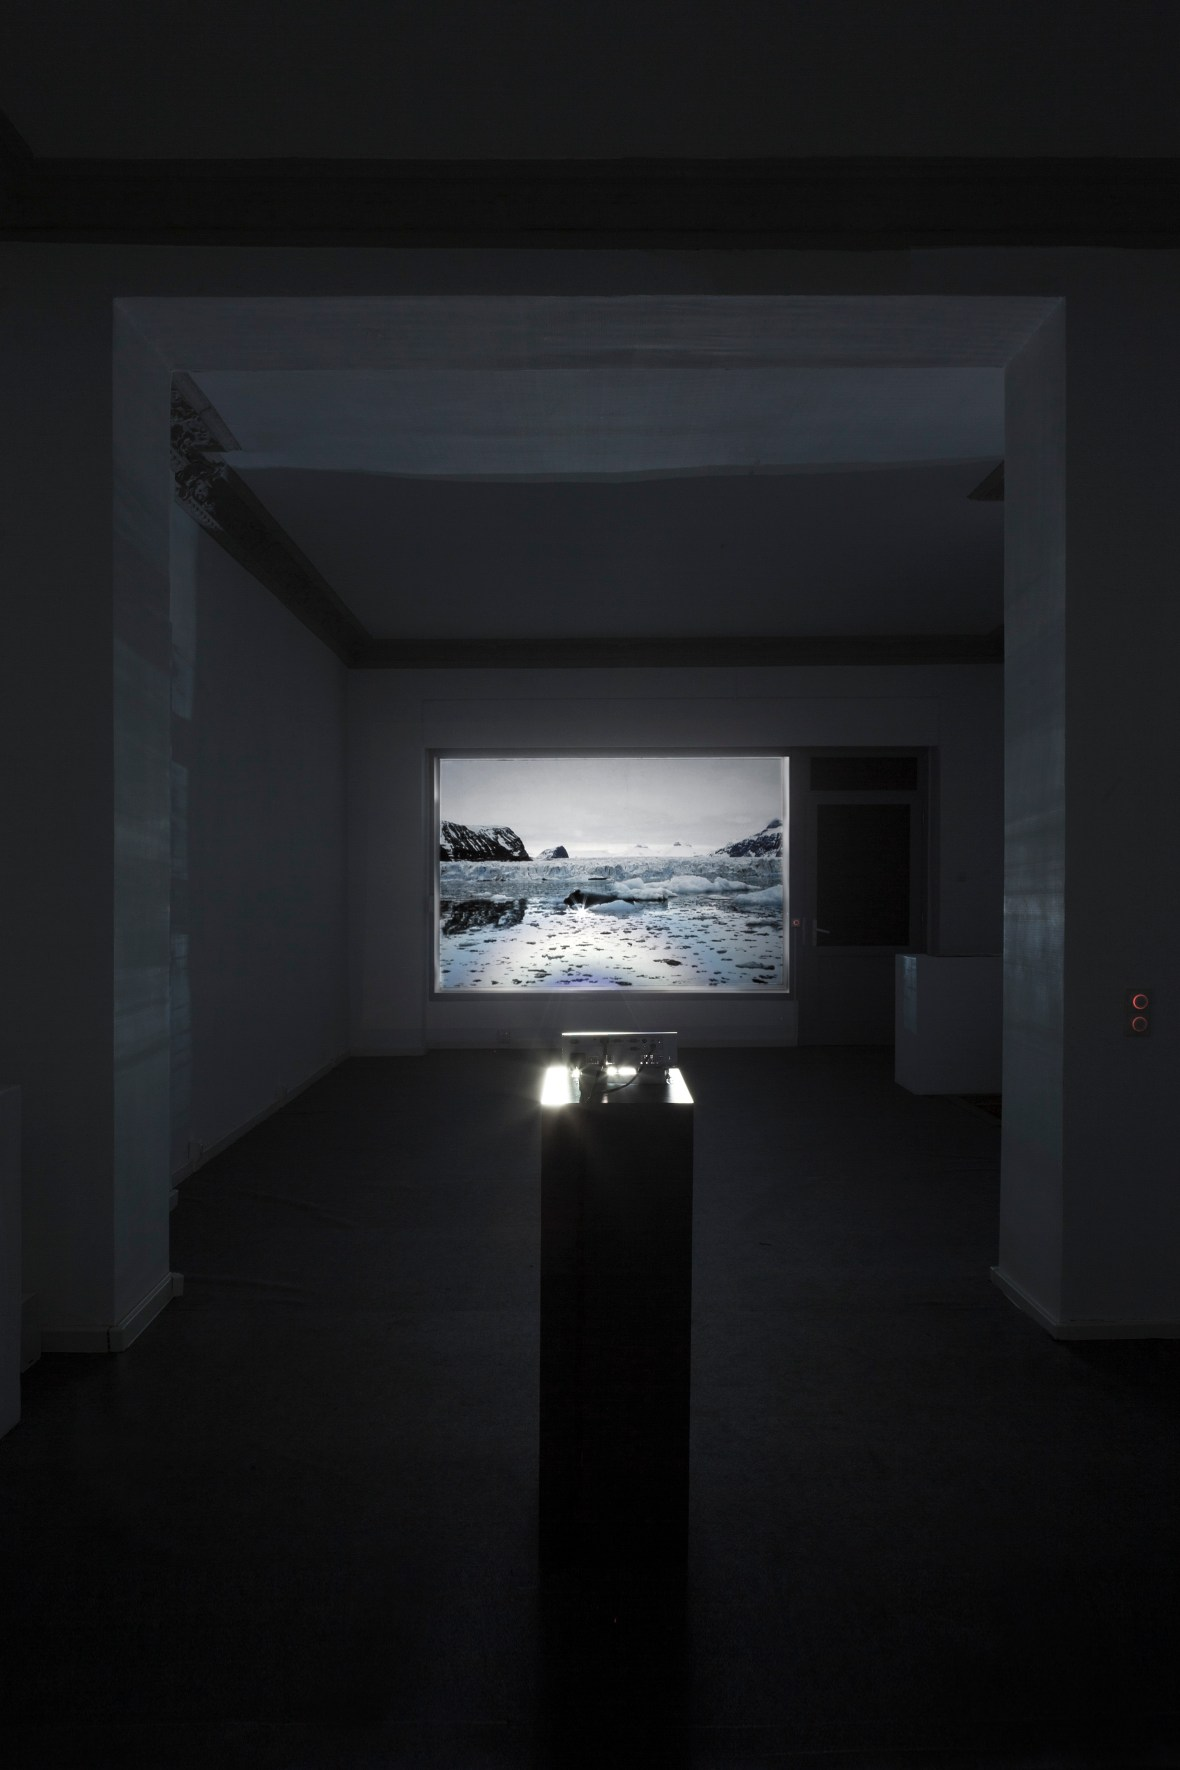 Emilija Škarnulytė No Place Rising, 2017 12 min, HD video Installation views from MANIFOLD, solo exhibition at Decad, Berlin Courtesy the artist and Decad Photography by Julija Goyd © 2017